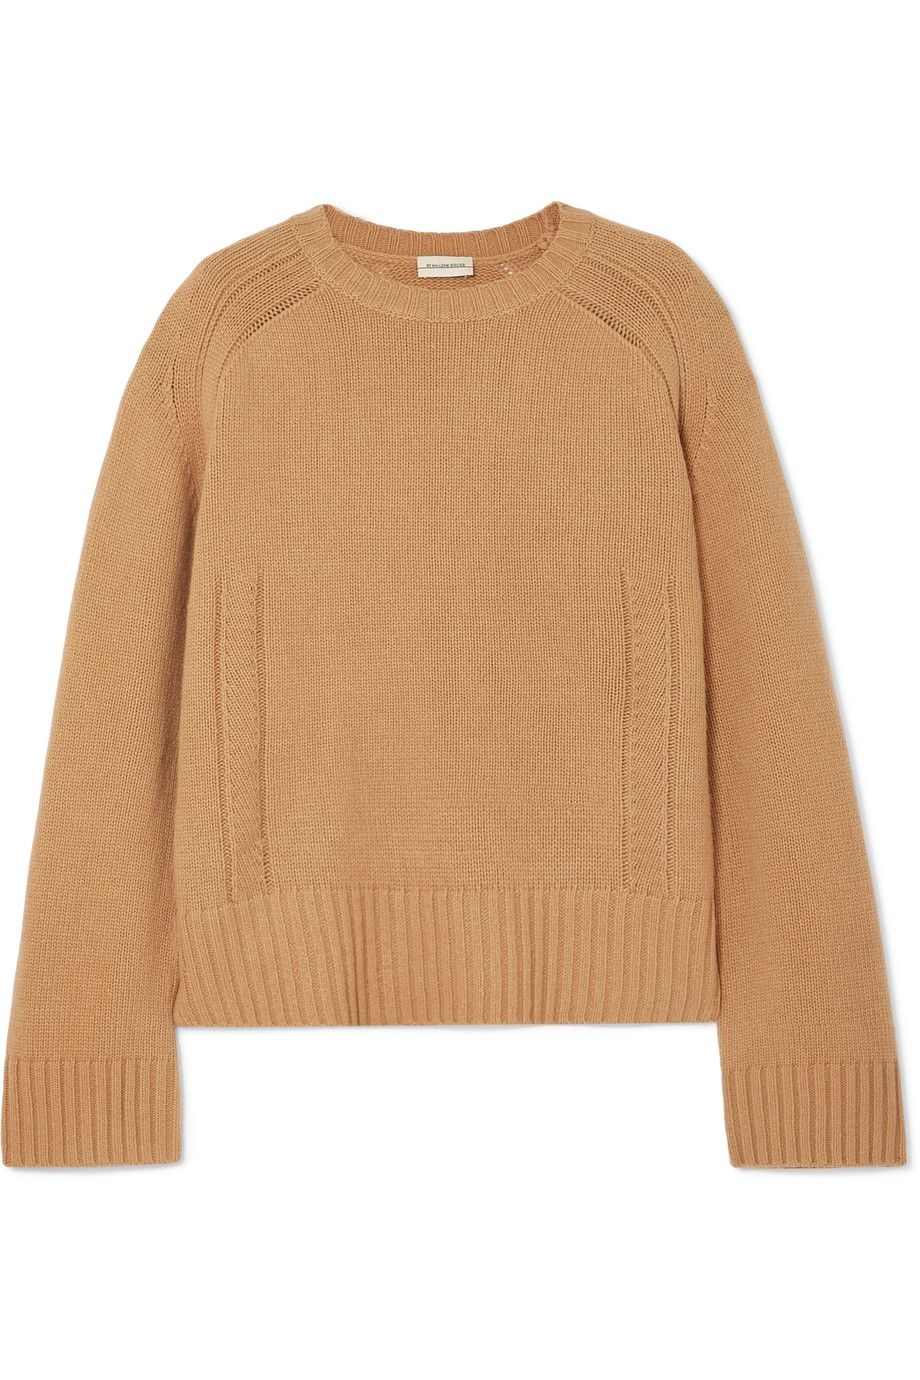 f29c2b324d7 By Malene Birger | Sullie wool-blend sweater | NET-A-PORTER.COM ...